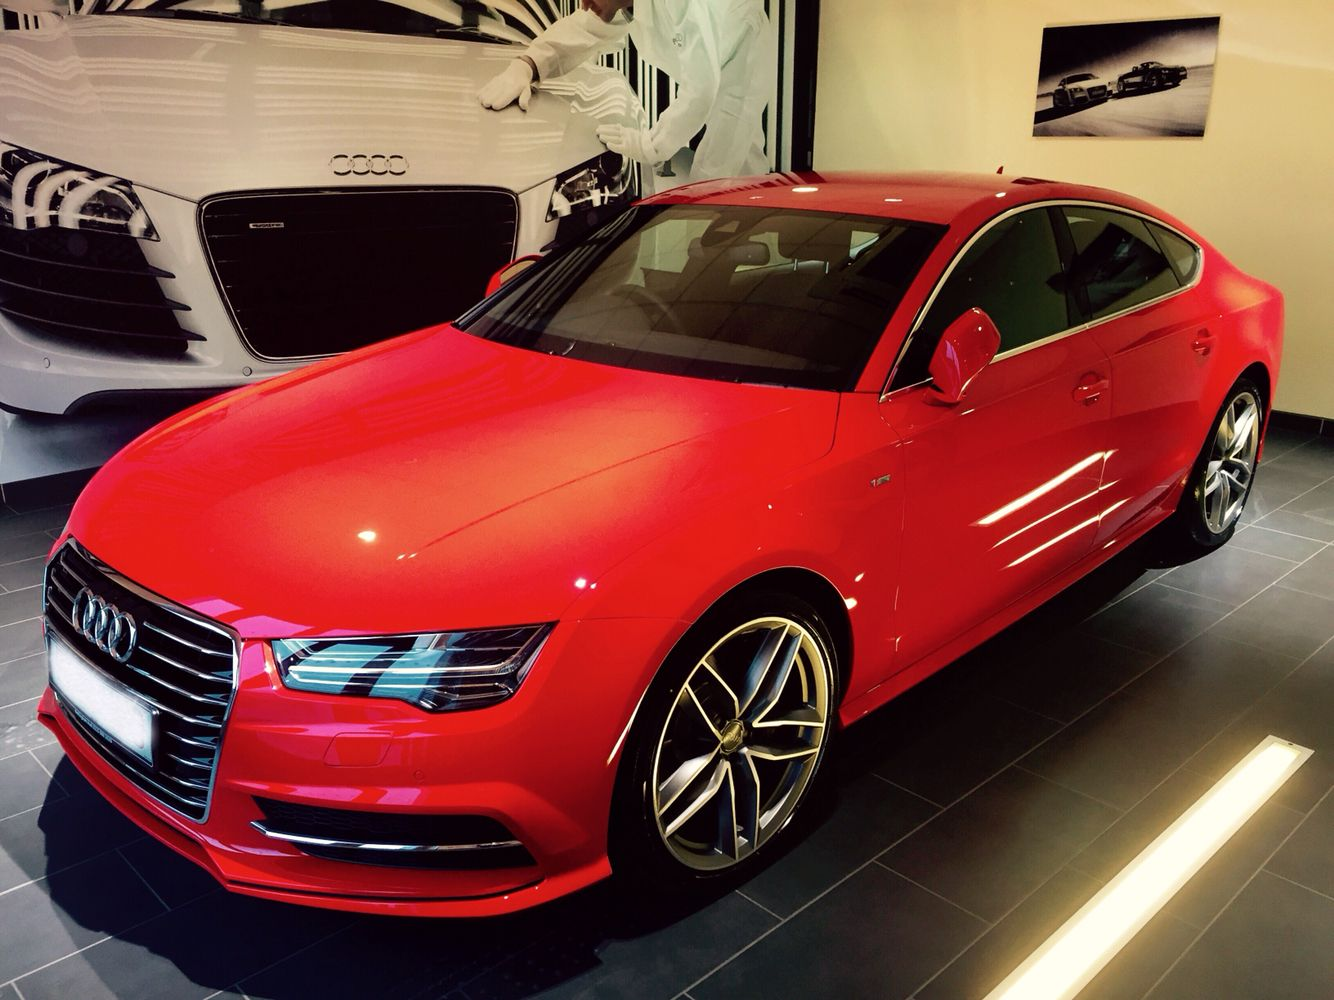 2015 audi a7 in misano red garage pinterest audi a7 audi and dream cars. Black Bedroom Furniture Sets. Home Design Ideas